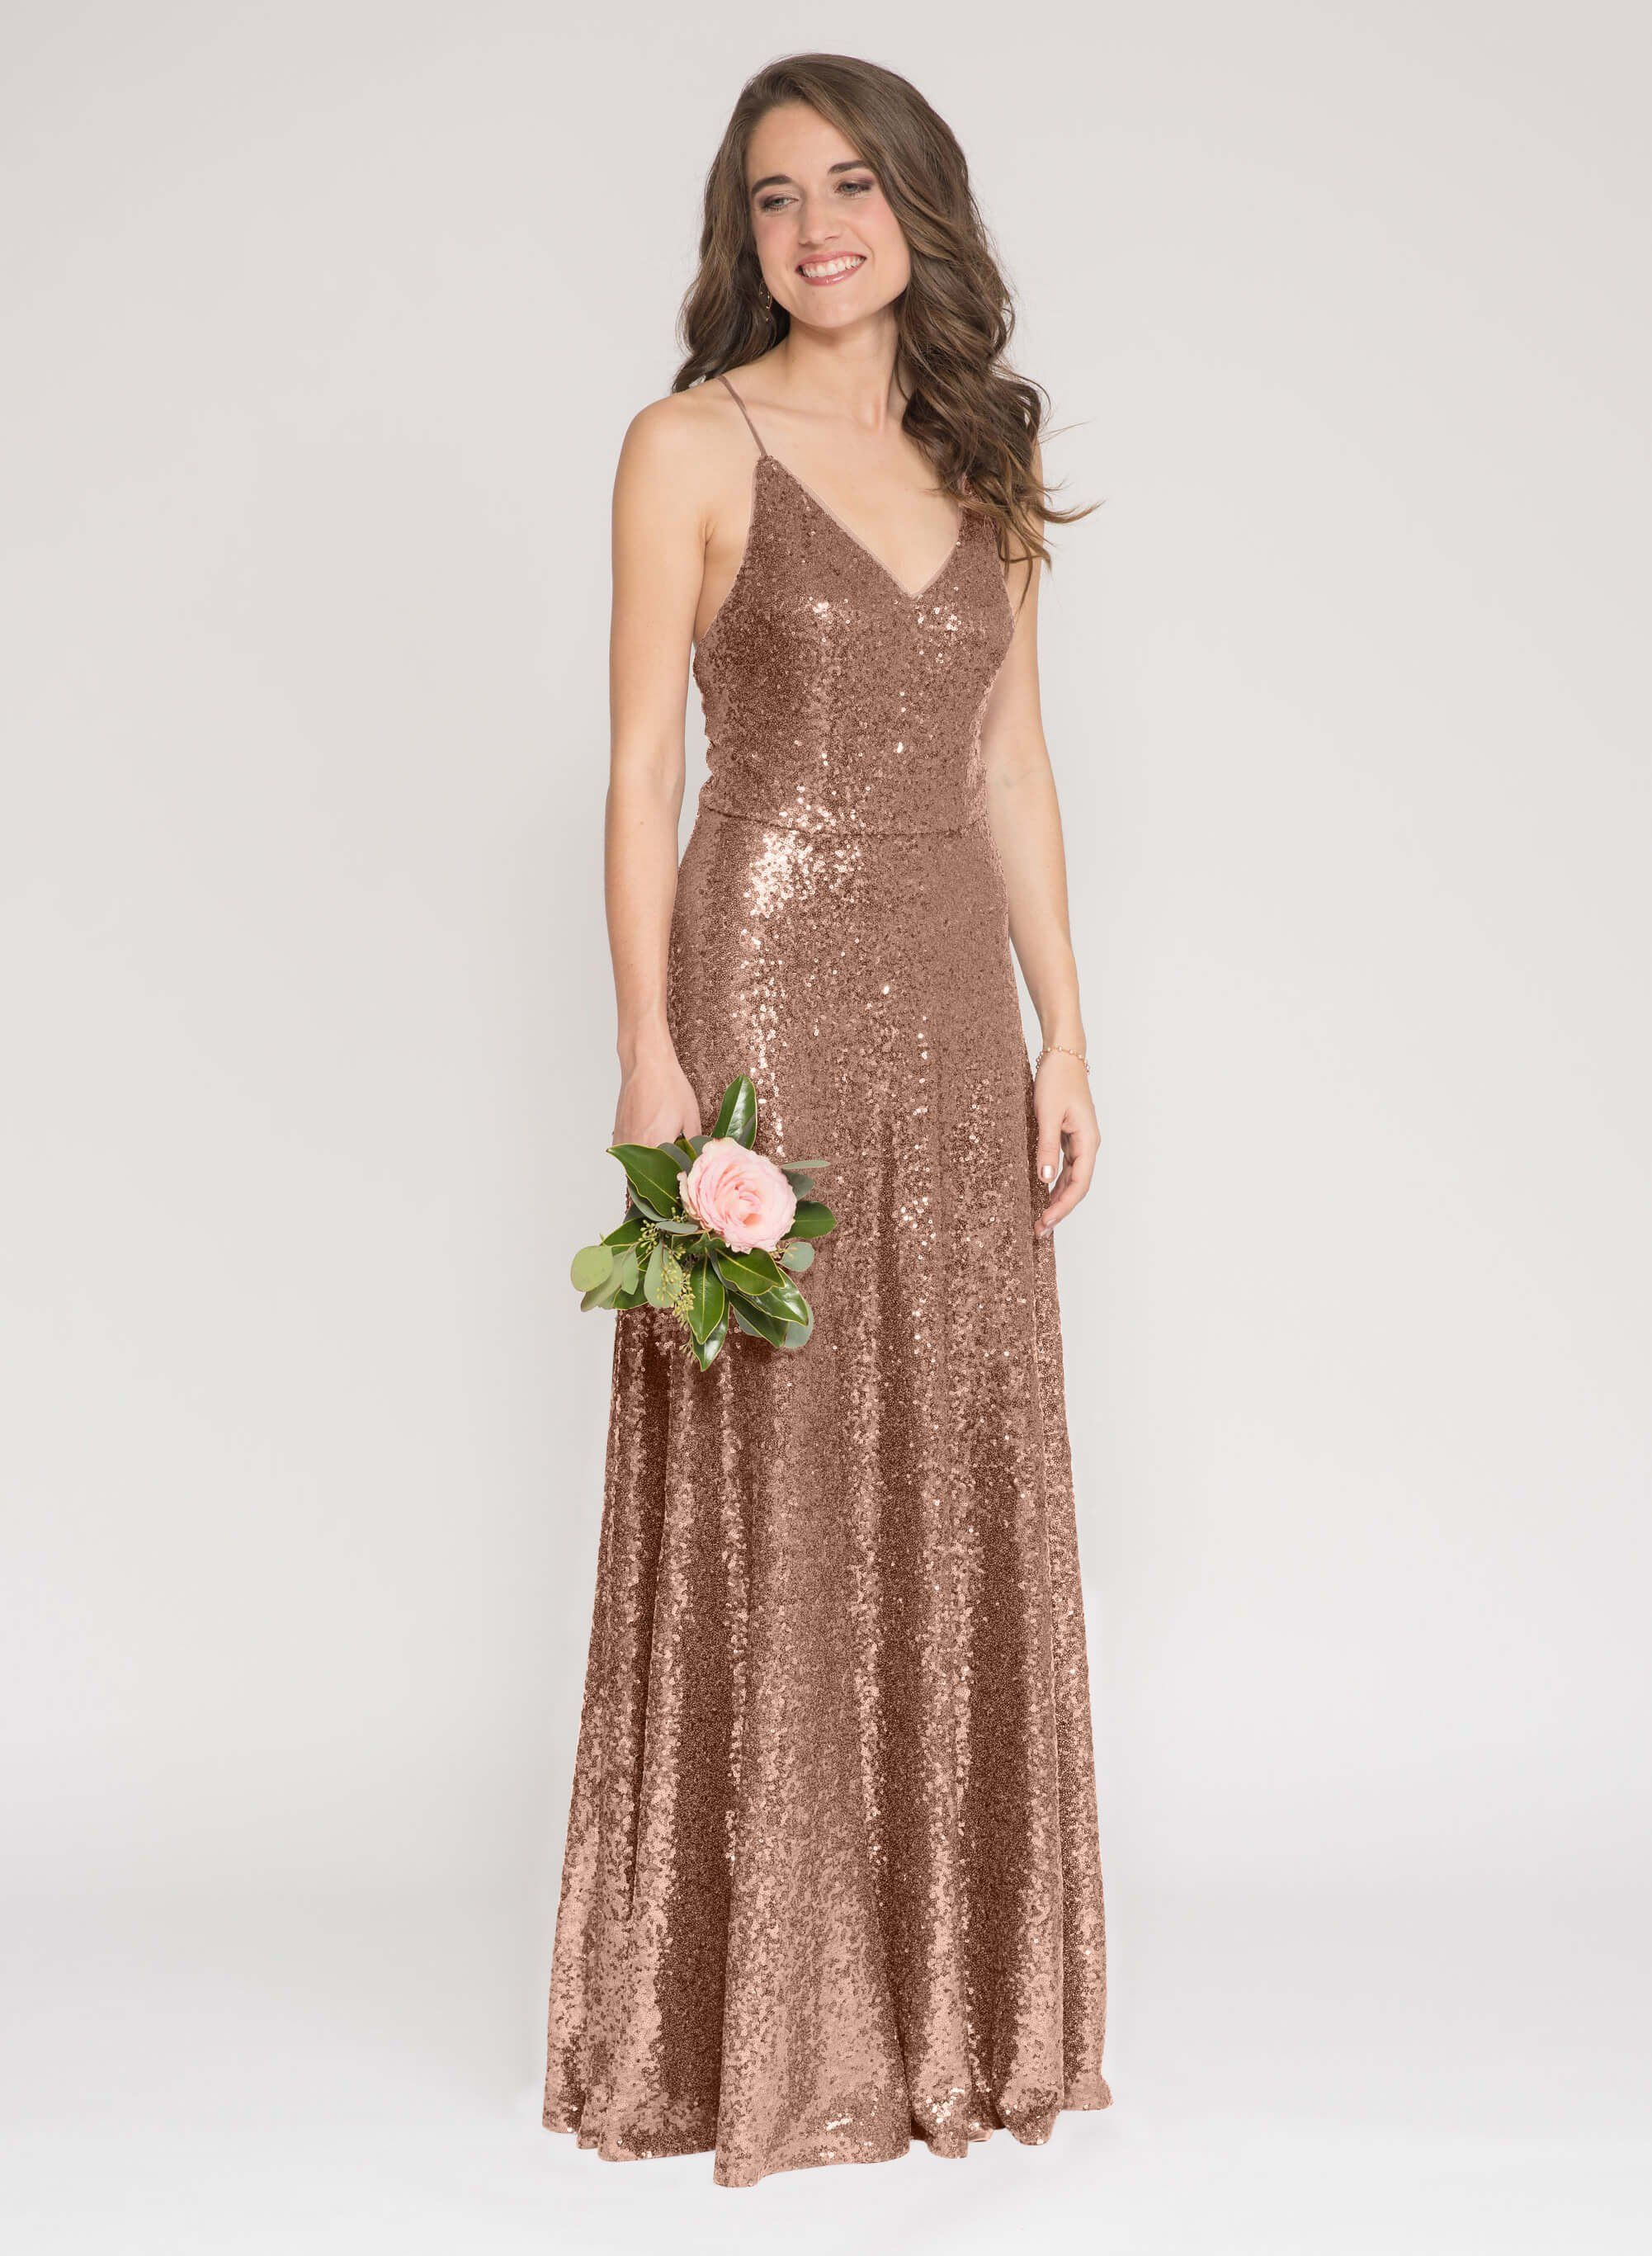 Decklyn dress sample frocks girly and prom